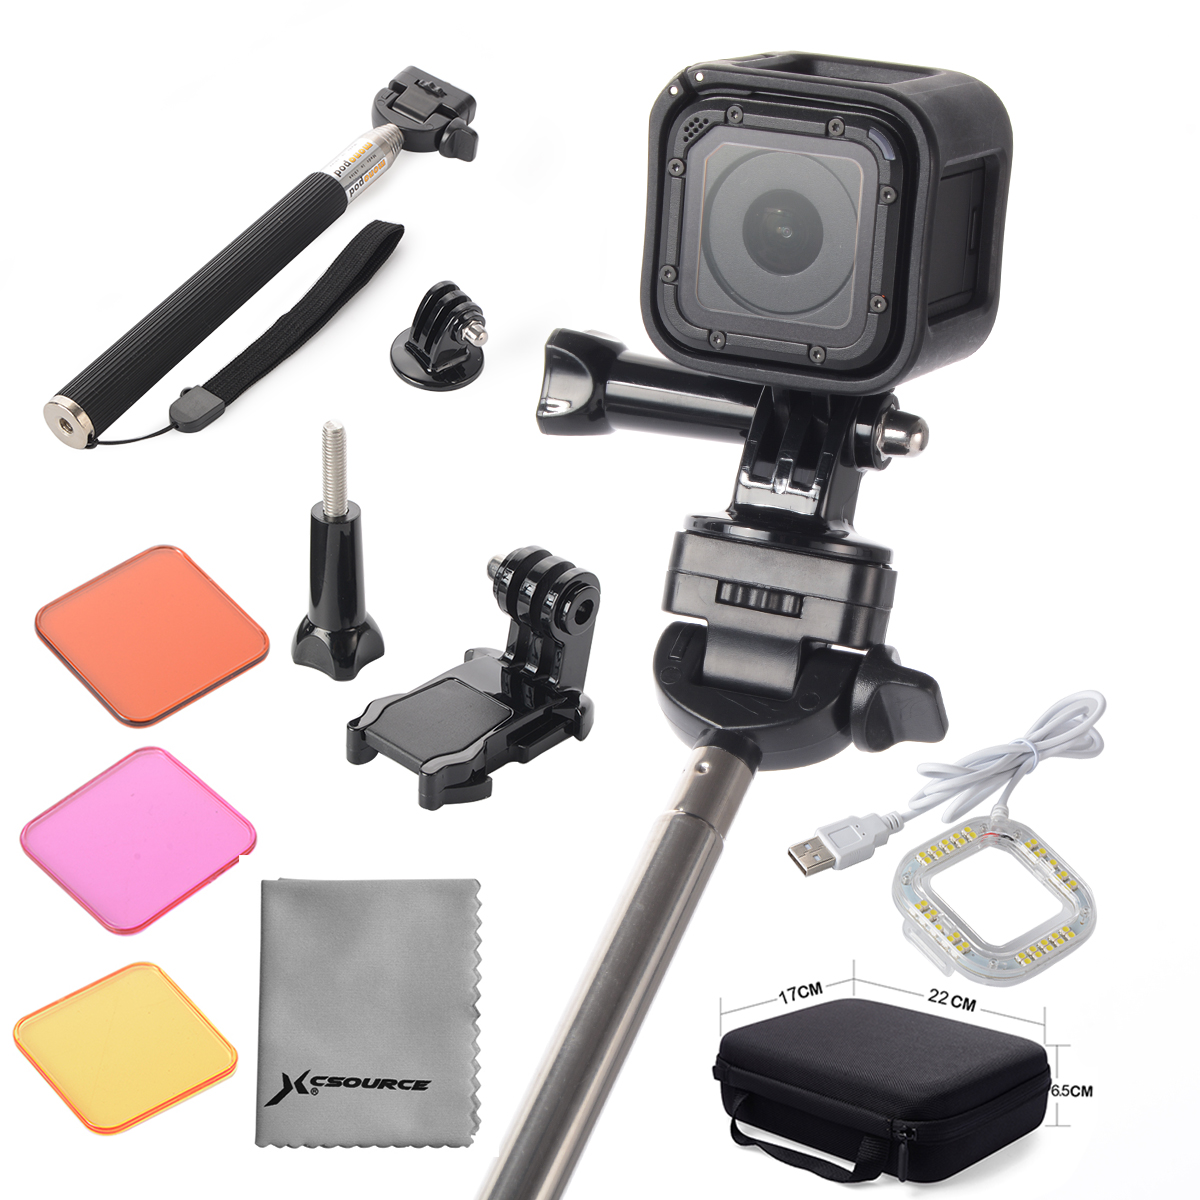 Mount Accessories 12in1 Kit Set for Gopro Hero 4 Session Monopod Bag Case OS473(China (Mainland))